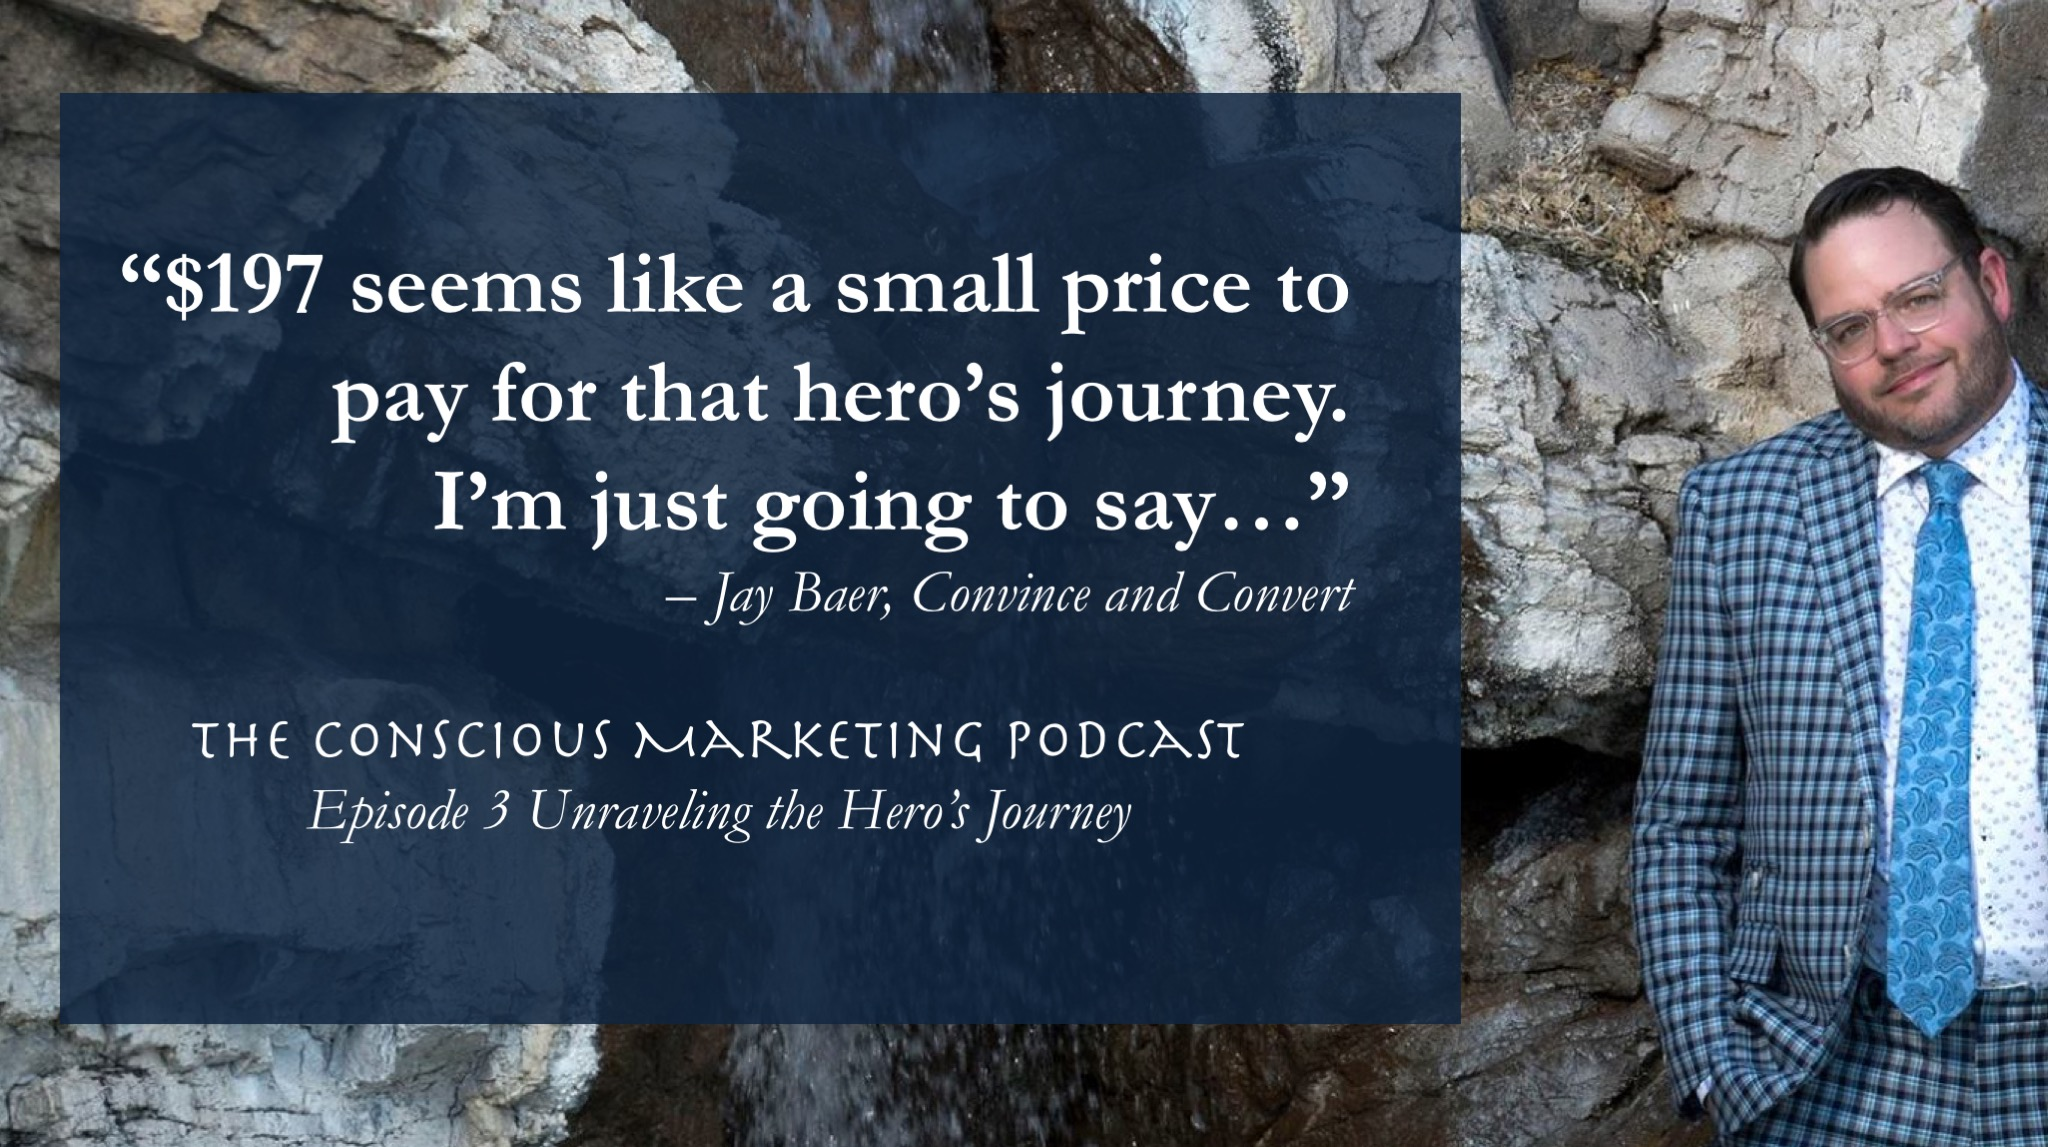 Jay Baer on the Hero's Journey